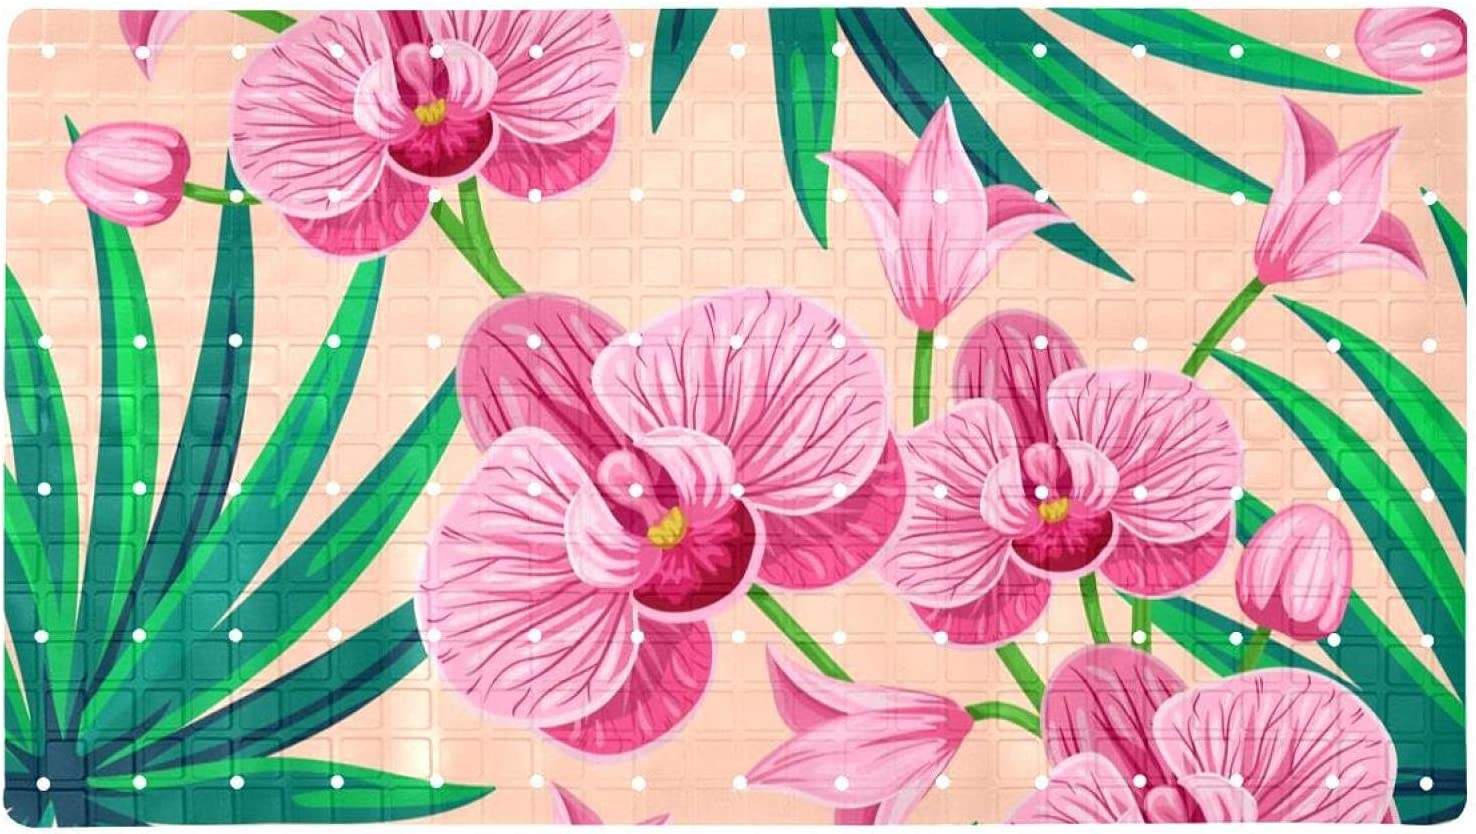 Bath Tub Shower Mat 15.7x27.9 inches Flow and Palm Luxury goods Orchid Leaves security